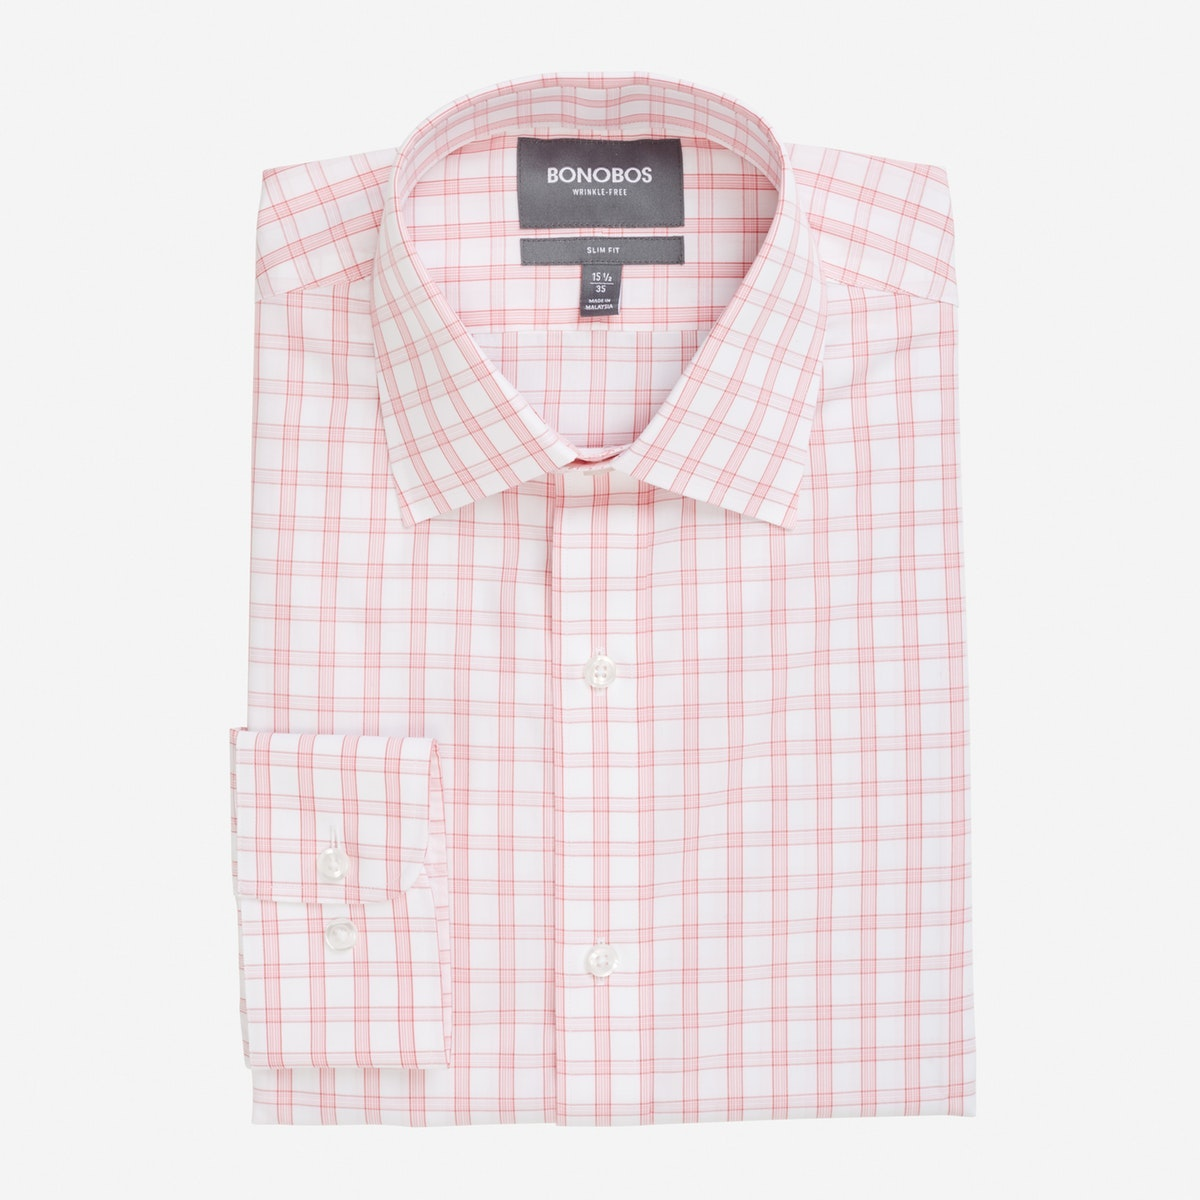 Daily Grind Wrinkle-Free Dress Shirt